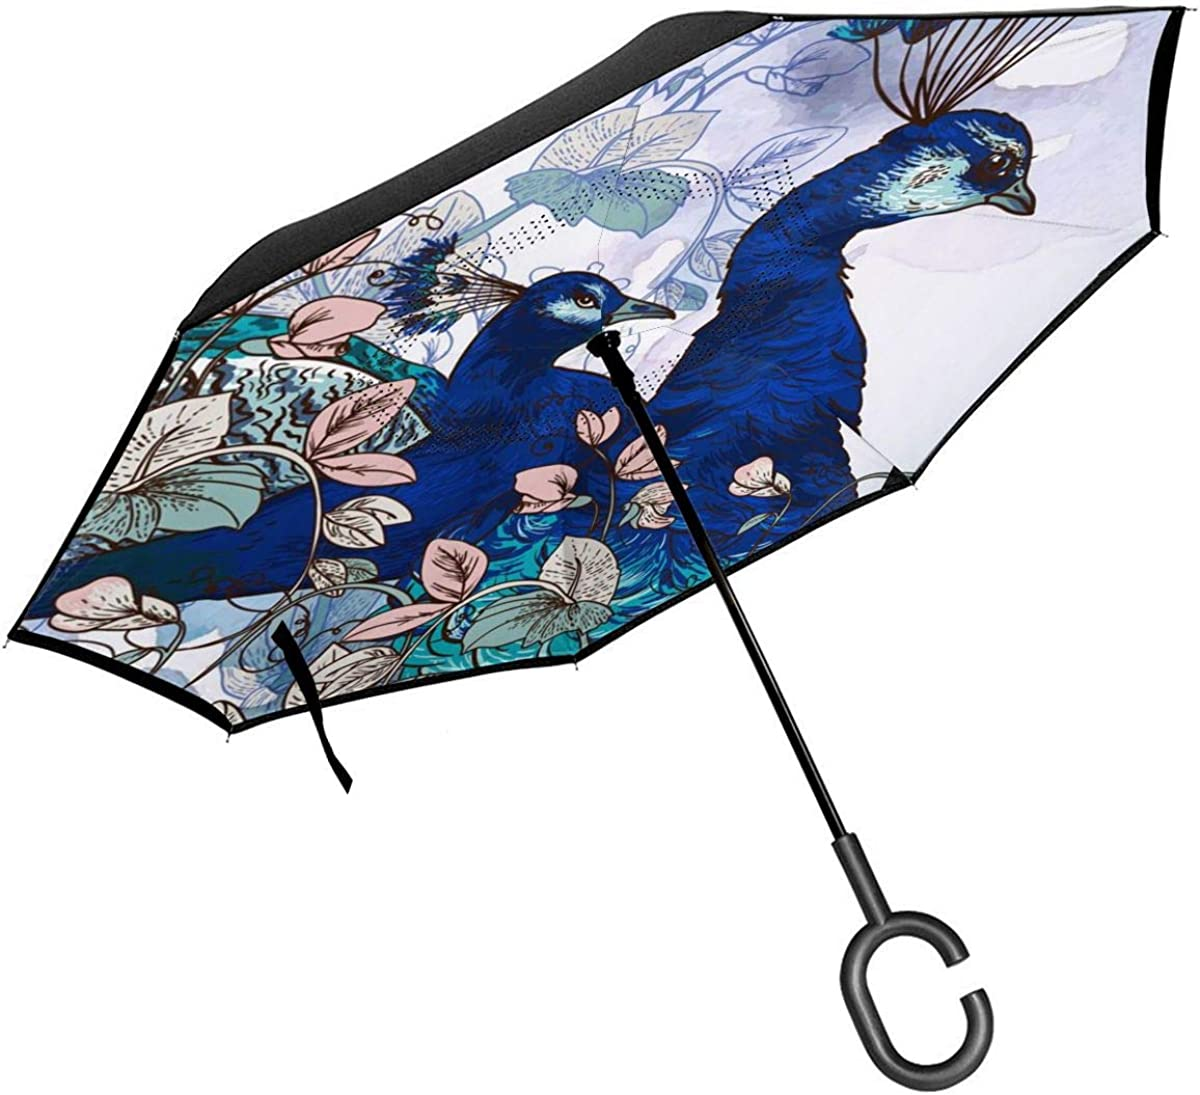 With Peacock Vector Image Reverse Umbrella Double Layer Inverted Umbrellas For Car Rain Outdoor With C-Shaped Handle Personalized